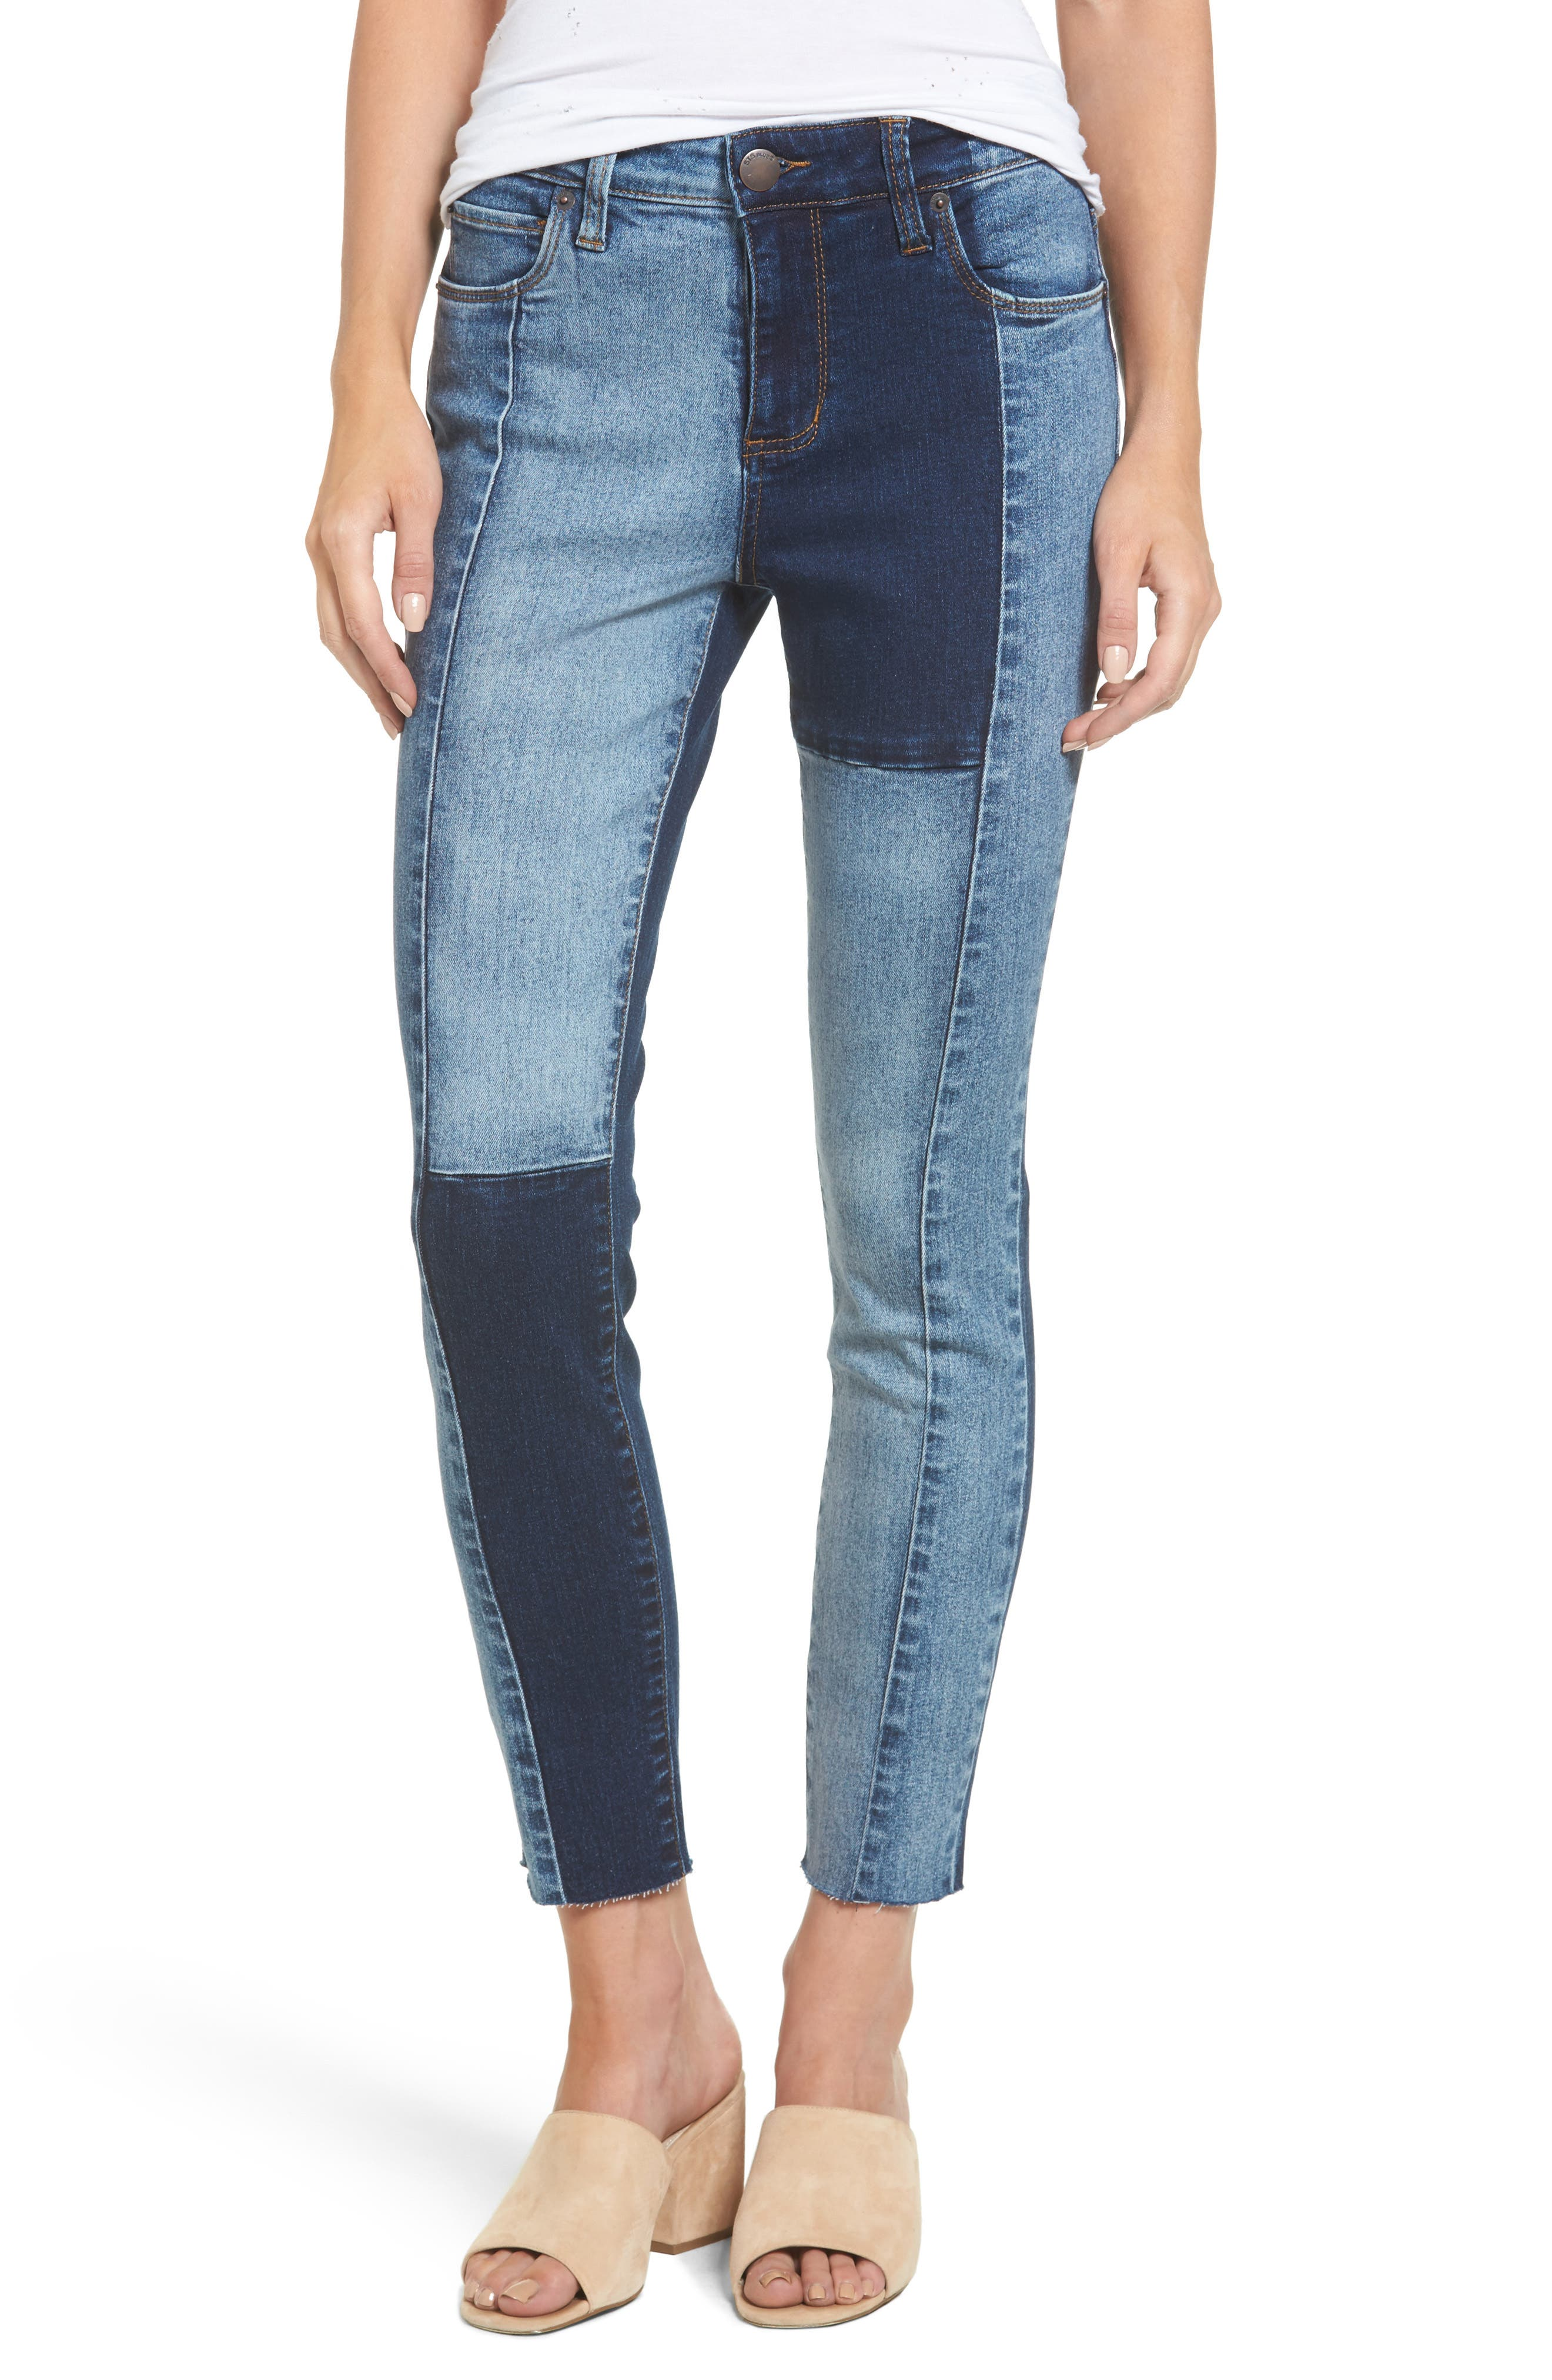 Piper Colorblock Ankle Skinny Jeans,                             Main thumbnail 1, color,                             400